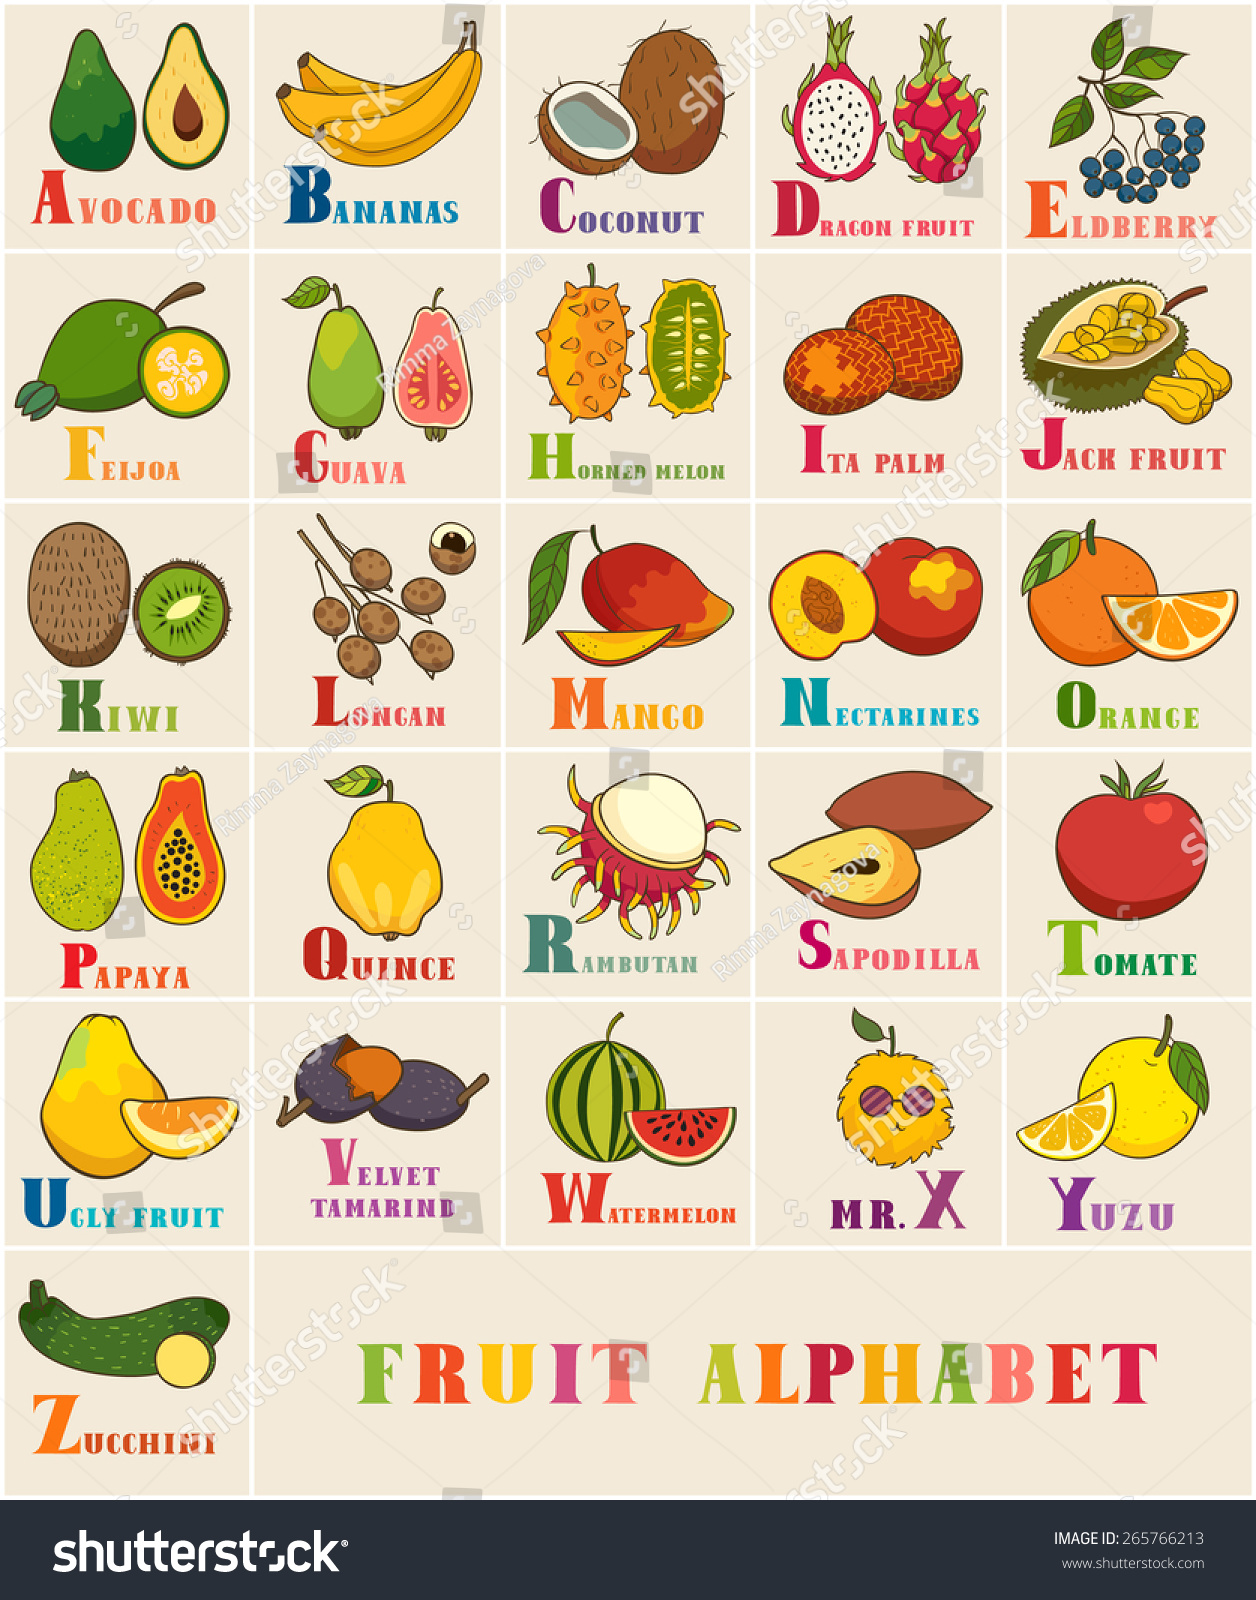 fruits that start with the letter a search results for vegetable alphabet carinteriordesign 45075